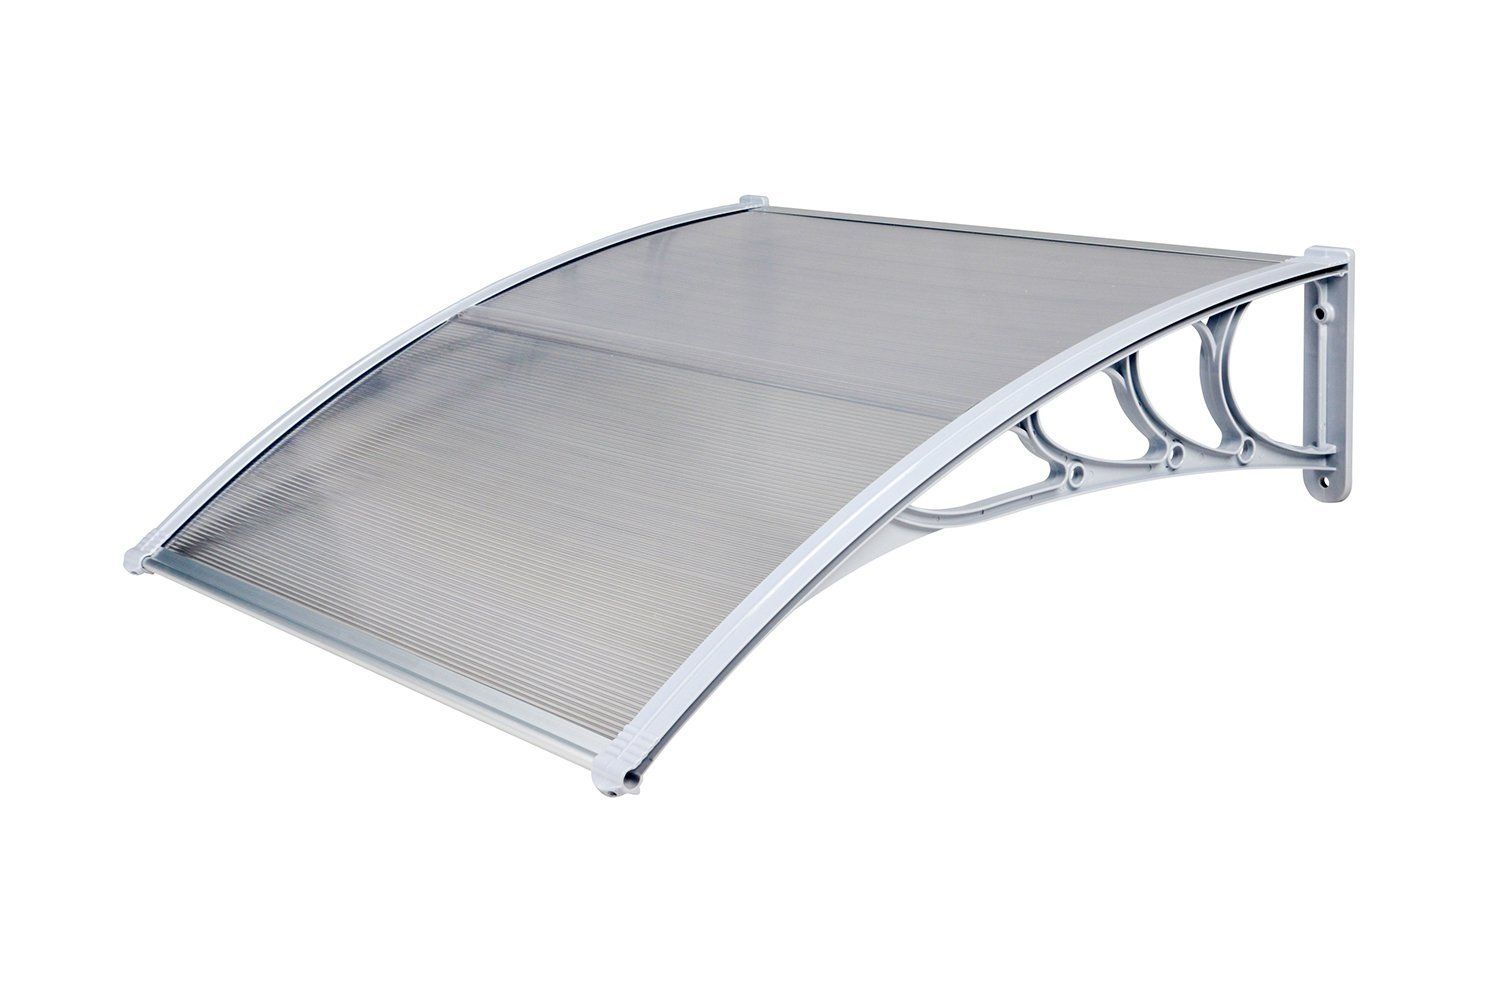 Buy Hive Window Awning Outdoor Door Sun Shade Rain Snow Yard Patio Protect Cover Canopy At Walmart Com Outdoor Doors Window Awnings Sun Shade